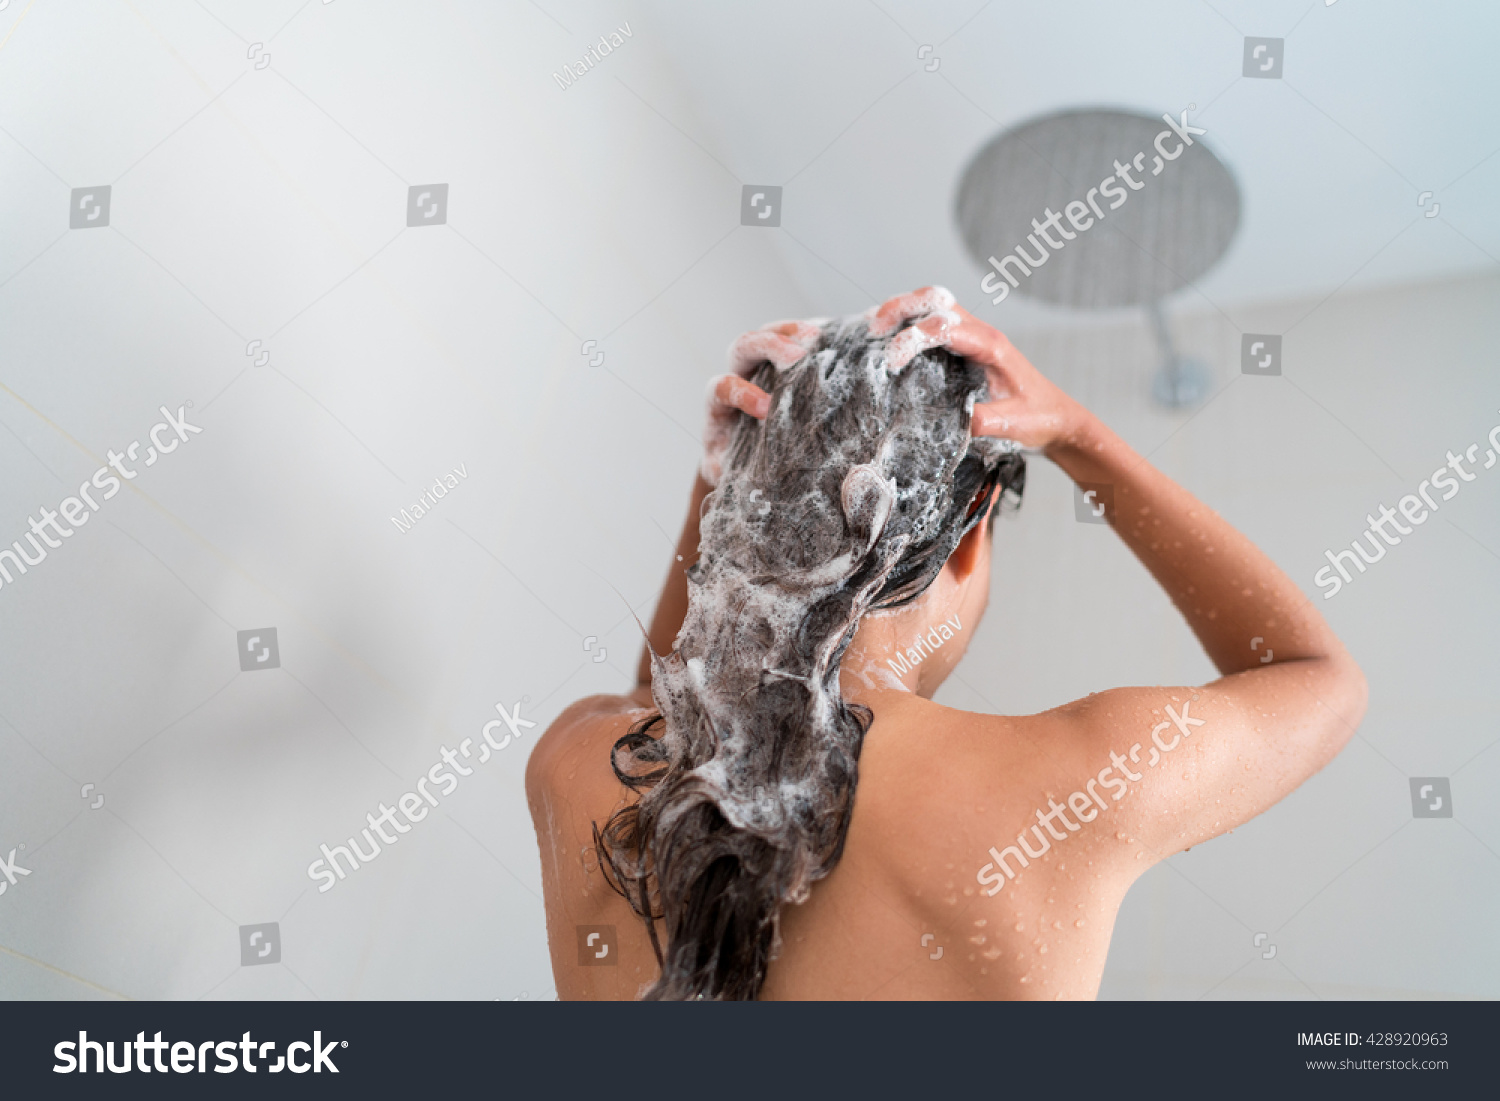 Shower woman washing hair showering in bathroom at home Unrecognizable person from behind rinsing shampoo and conditioner from her long hair in warm bath with modern ceiling rain water nozzle head